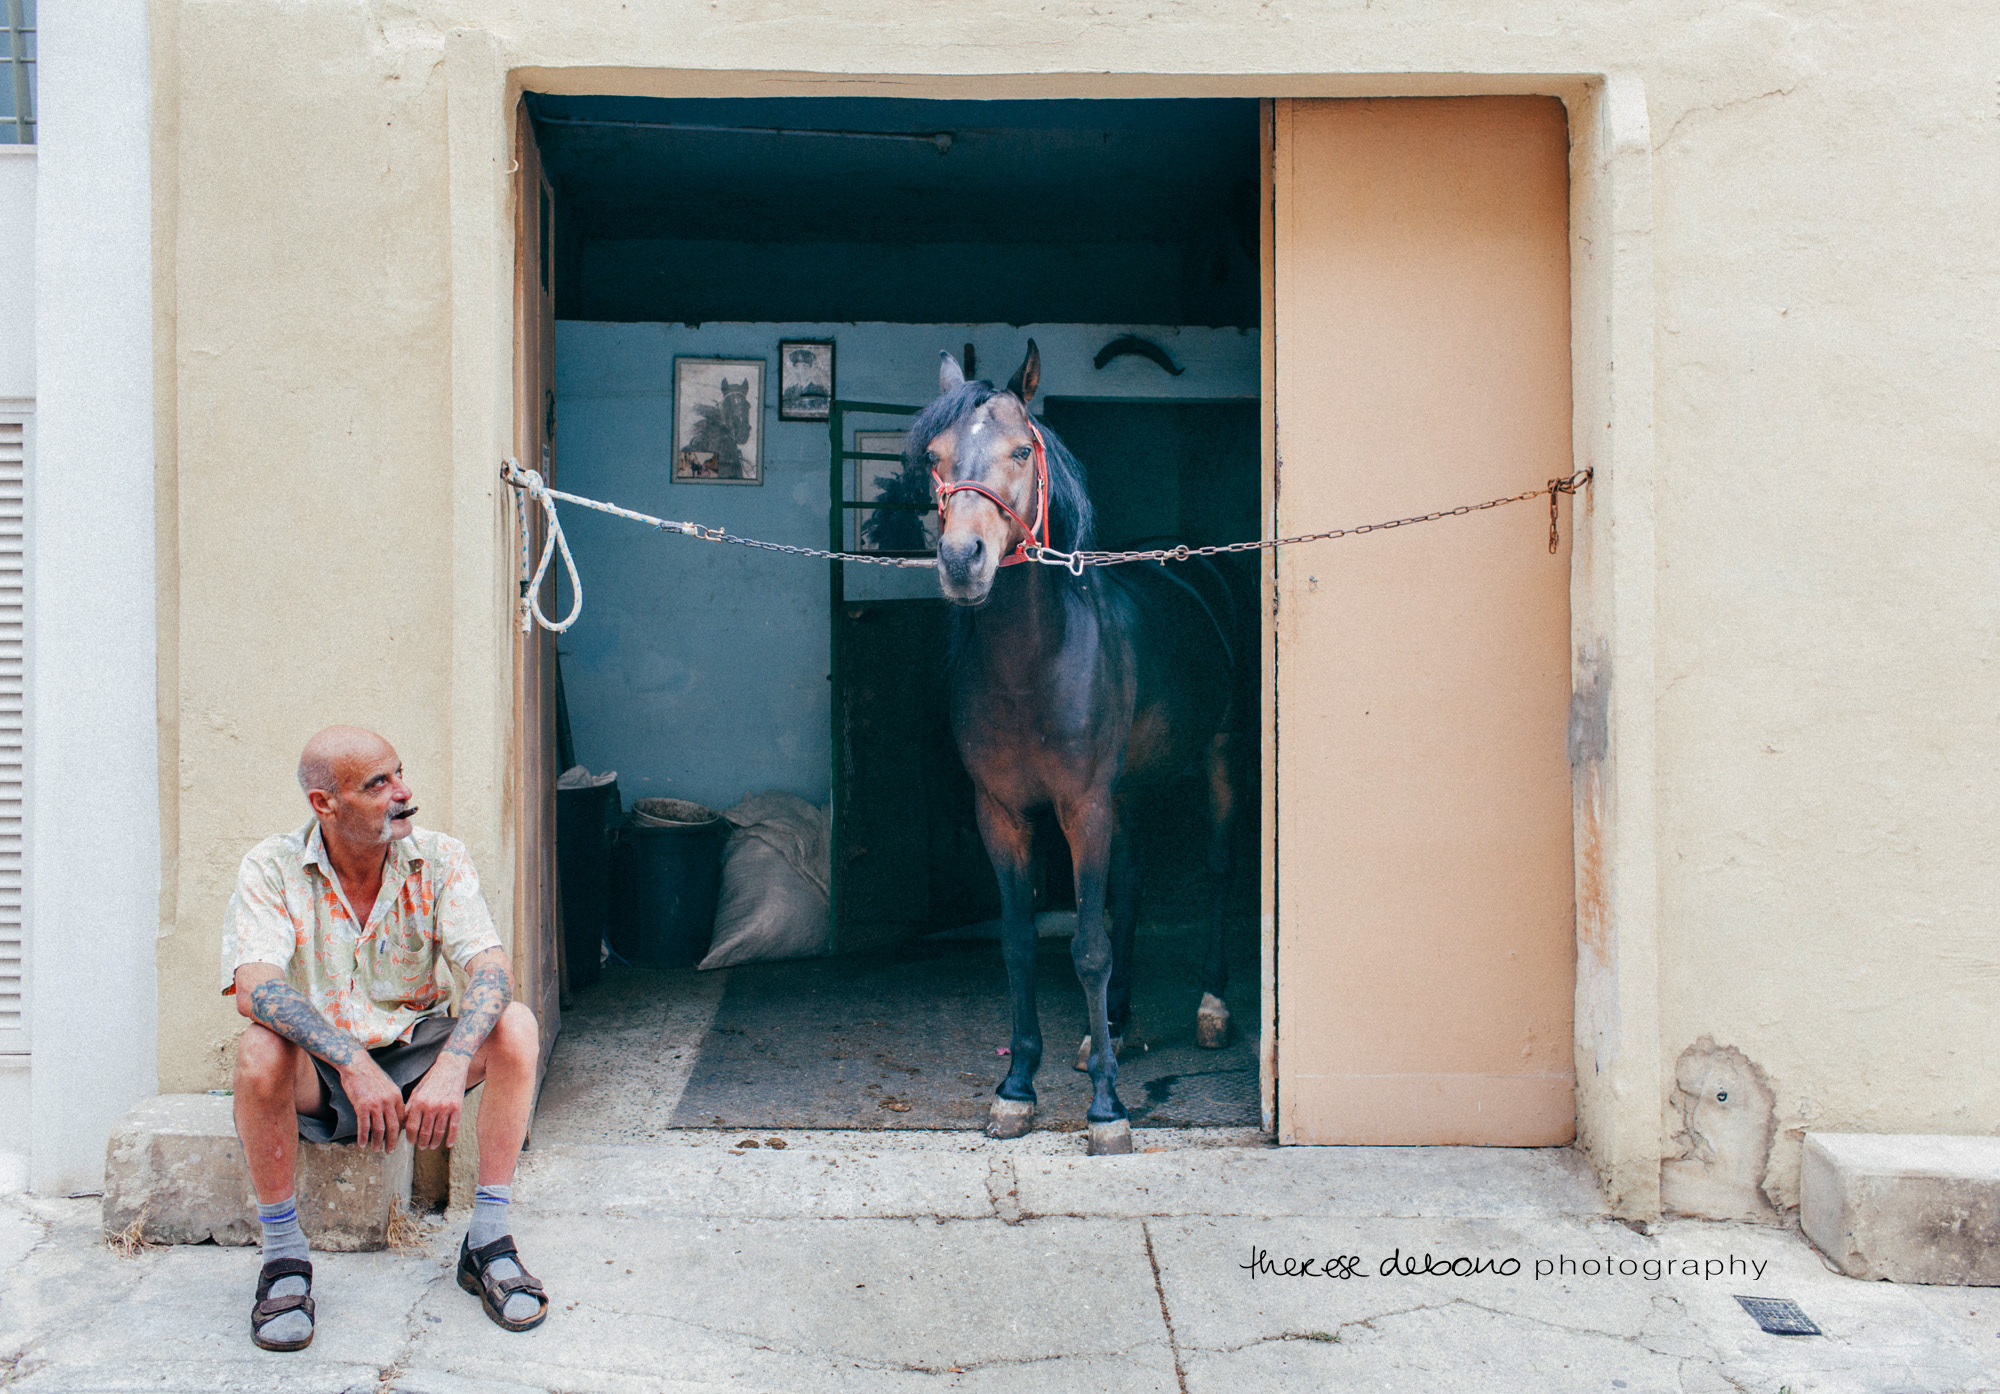 Frans and his beloved horse: 24th June 2015